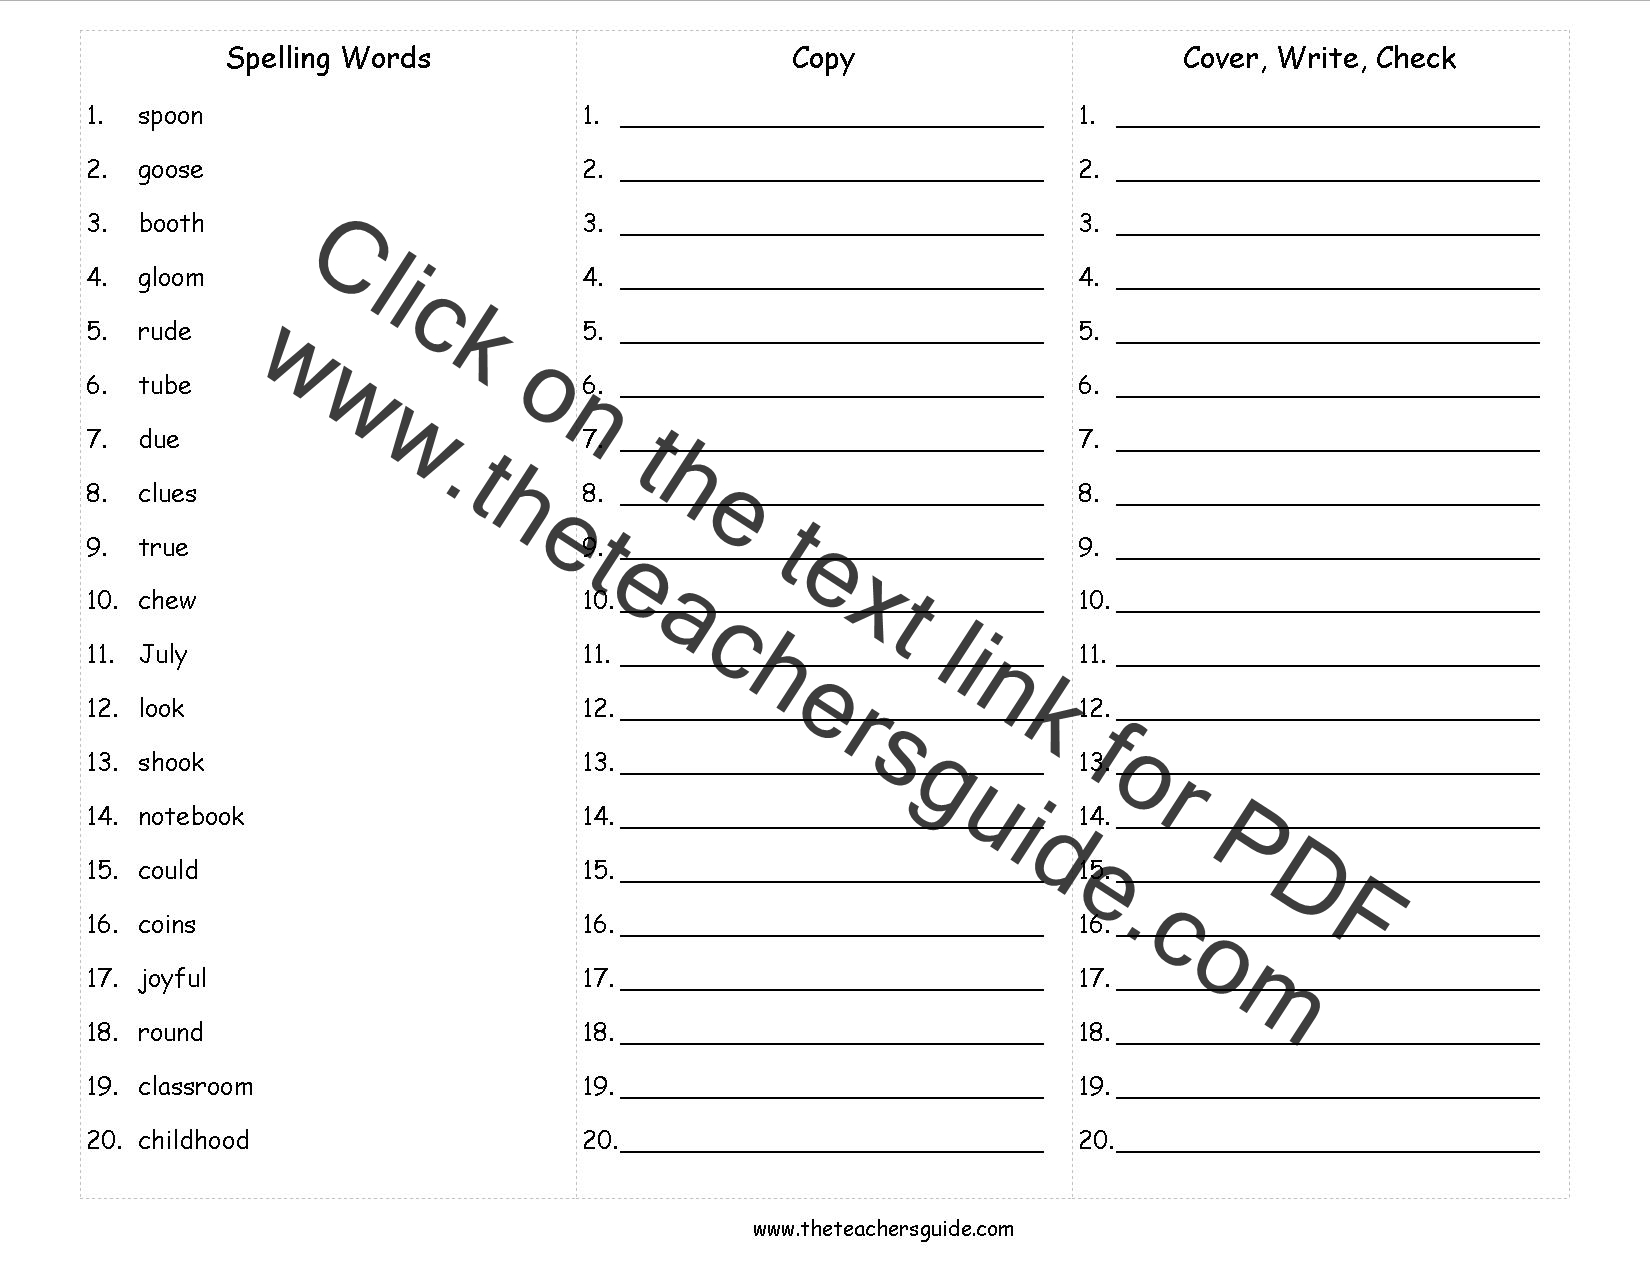 spelling words cover copy write